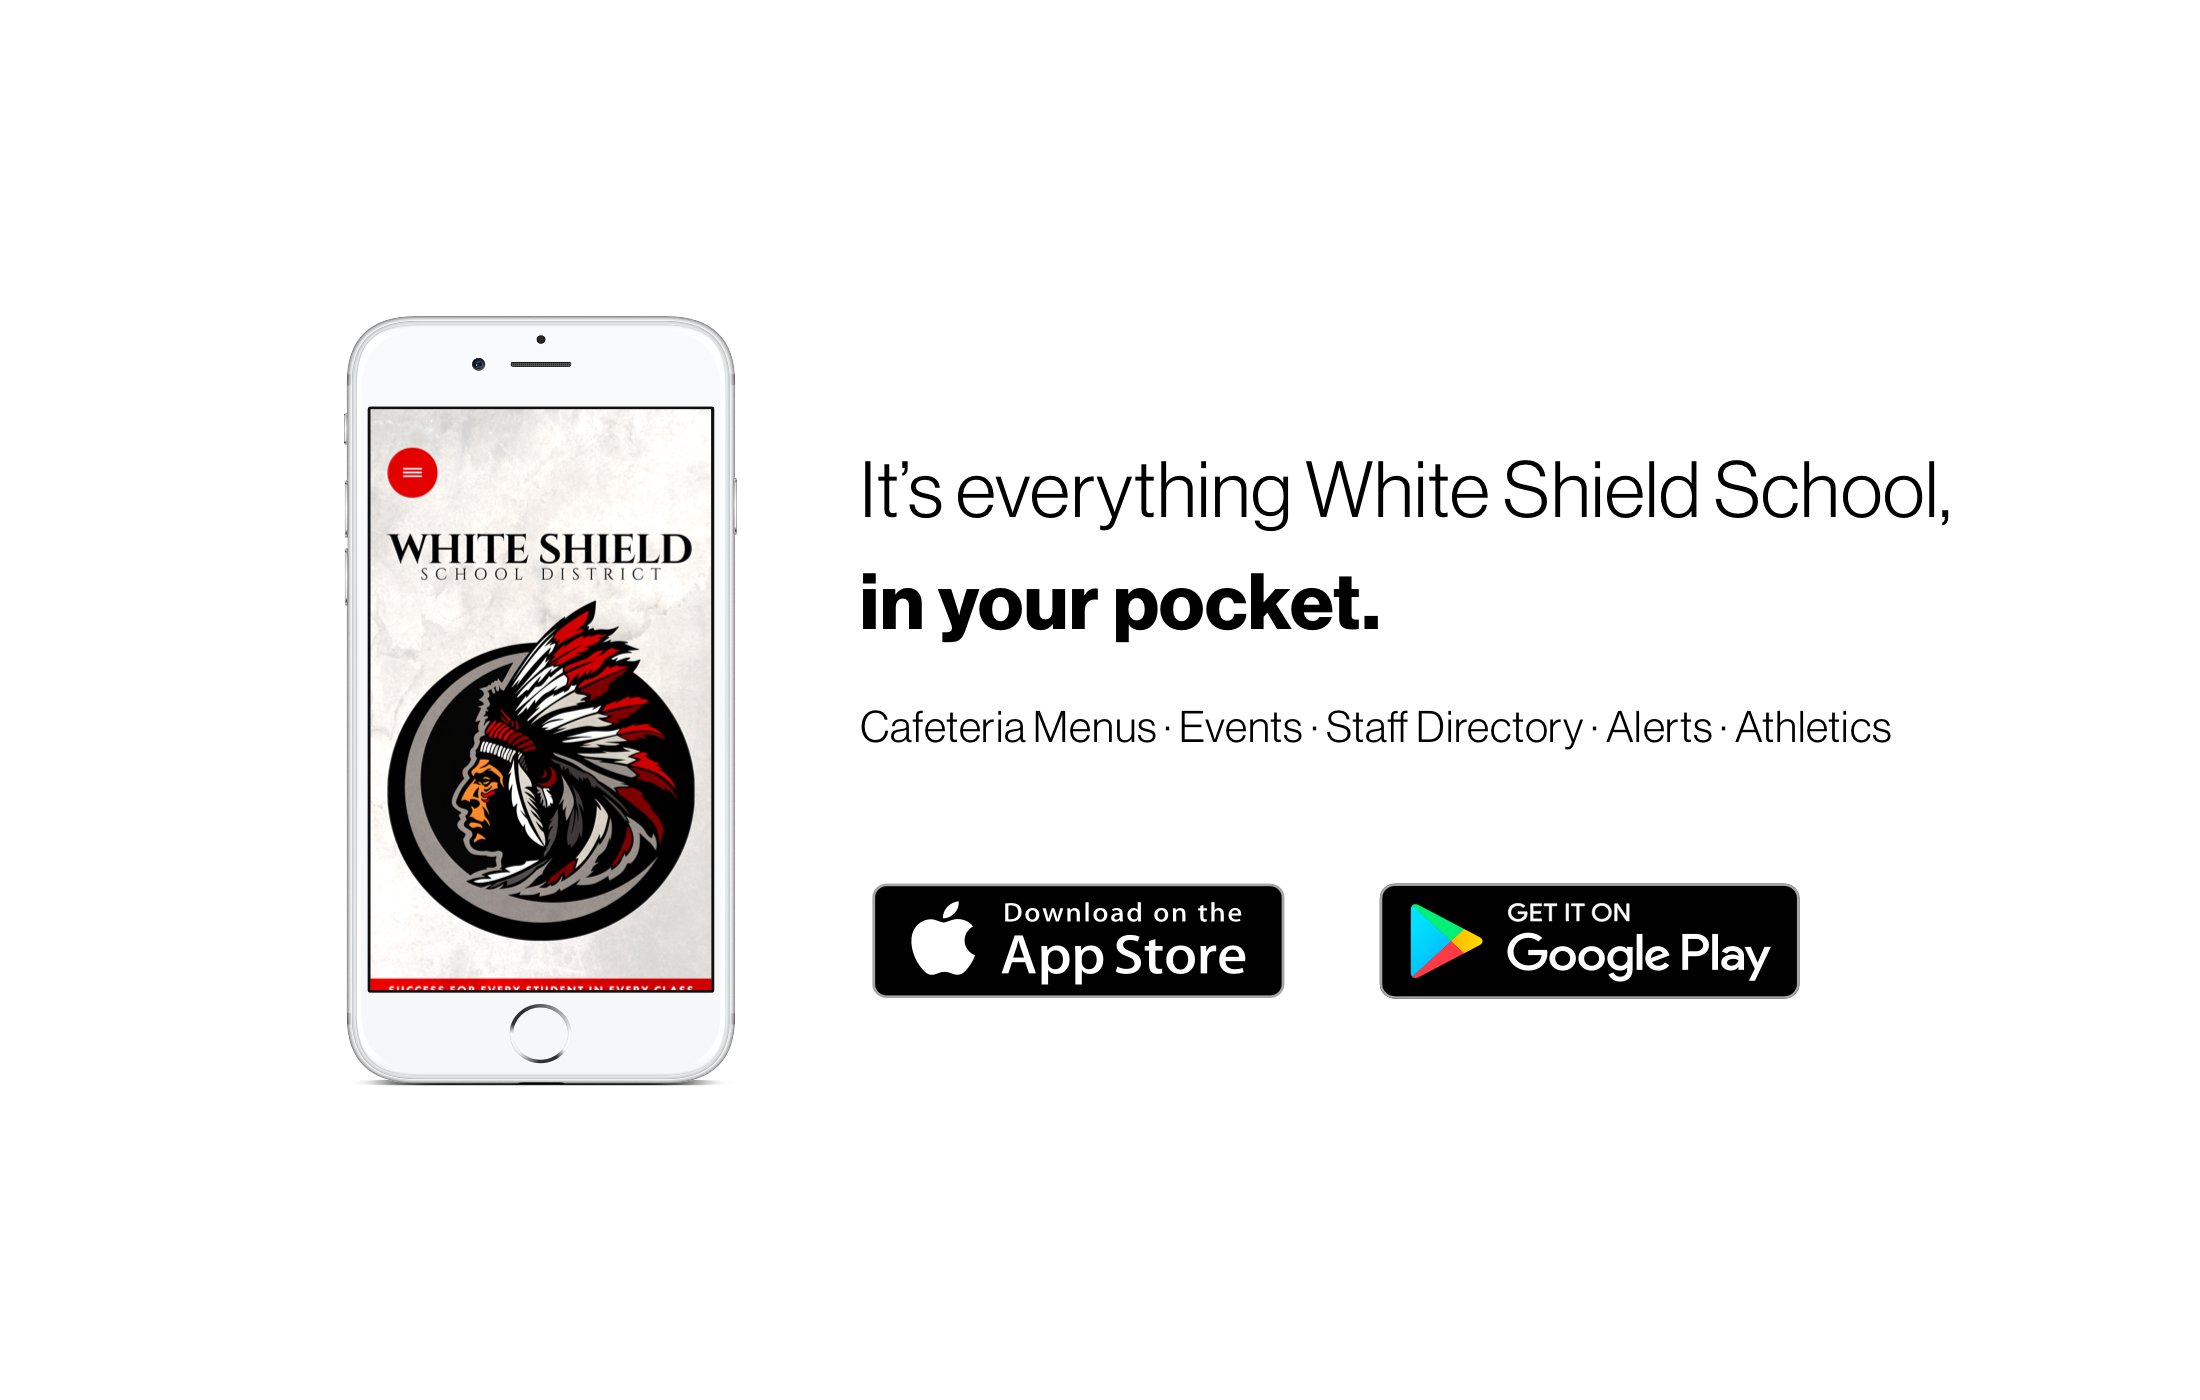 It's everything White Shield School in your pocket